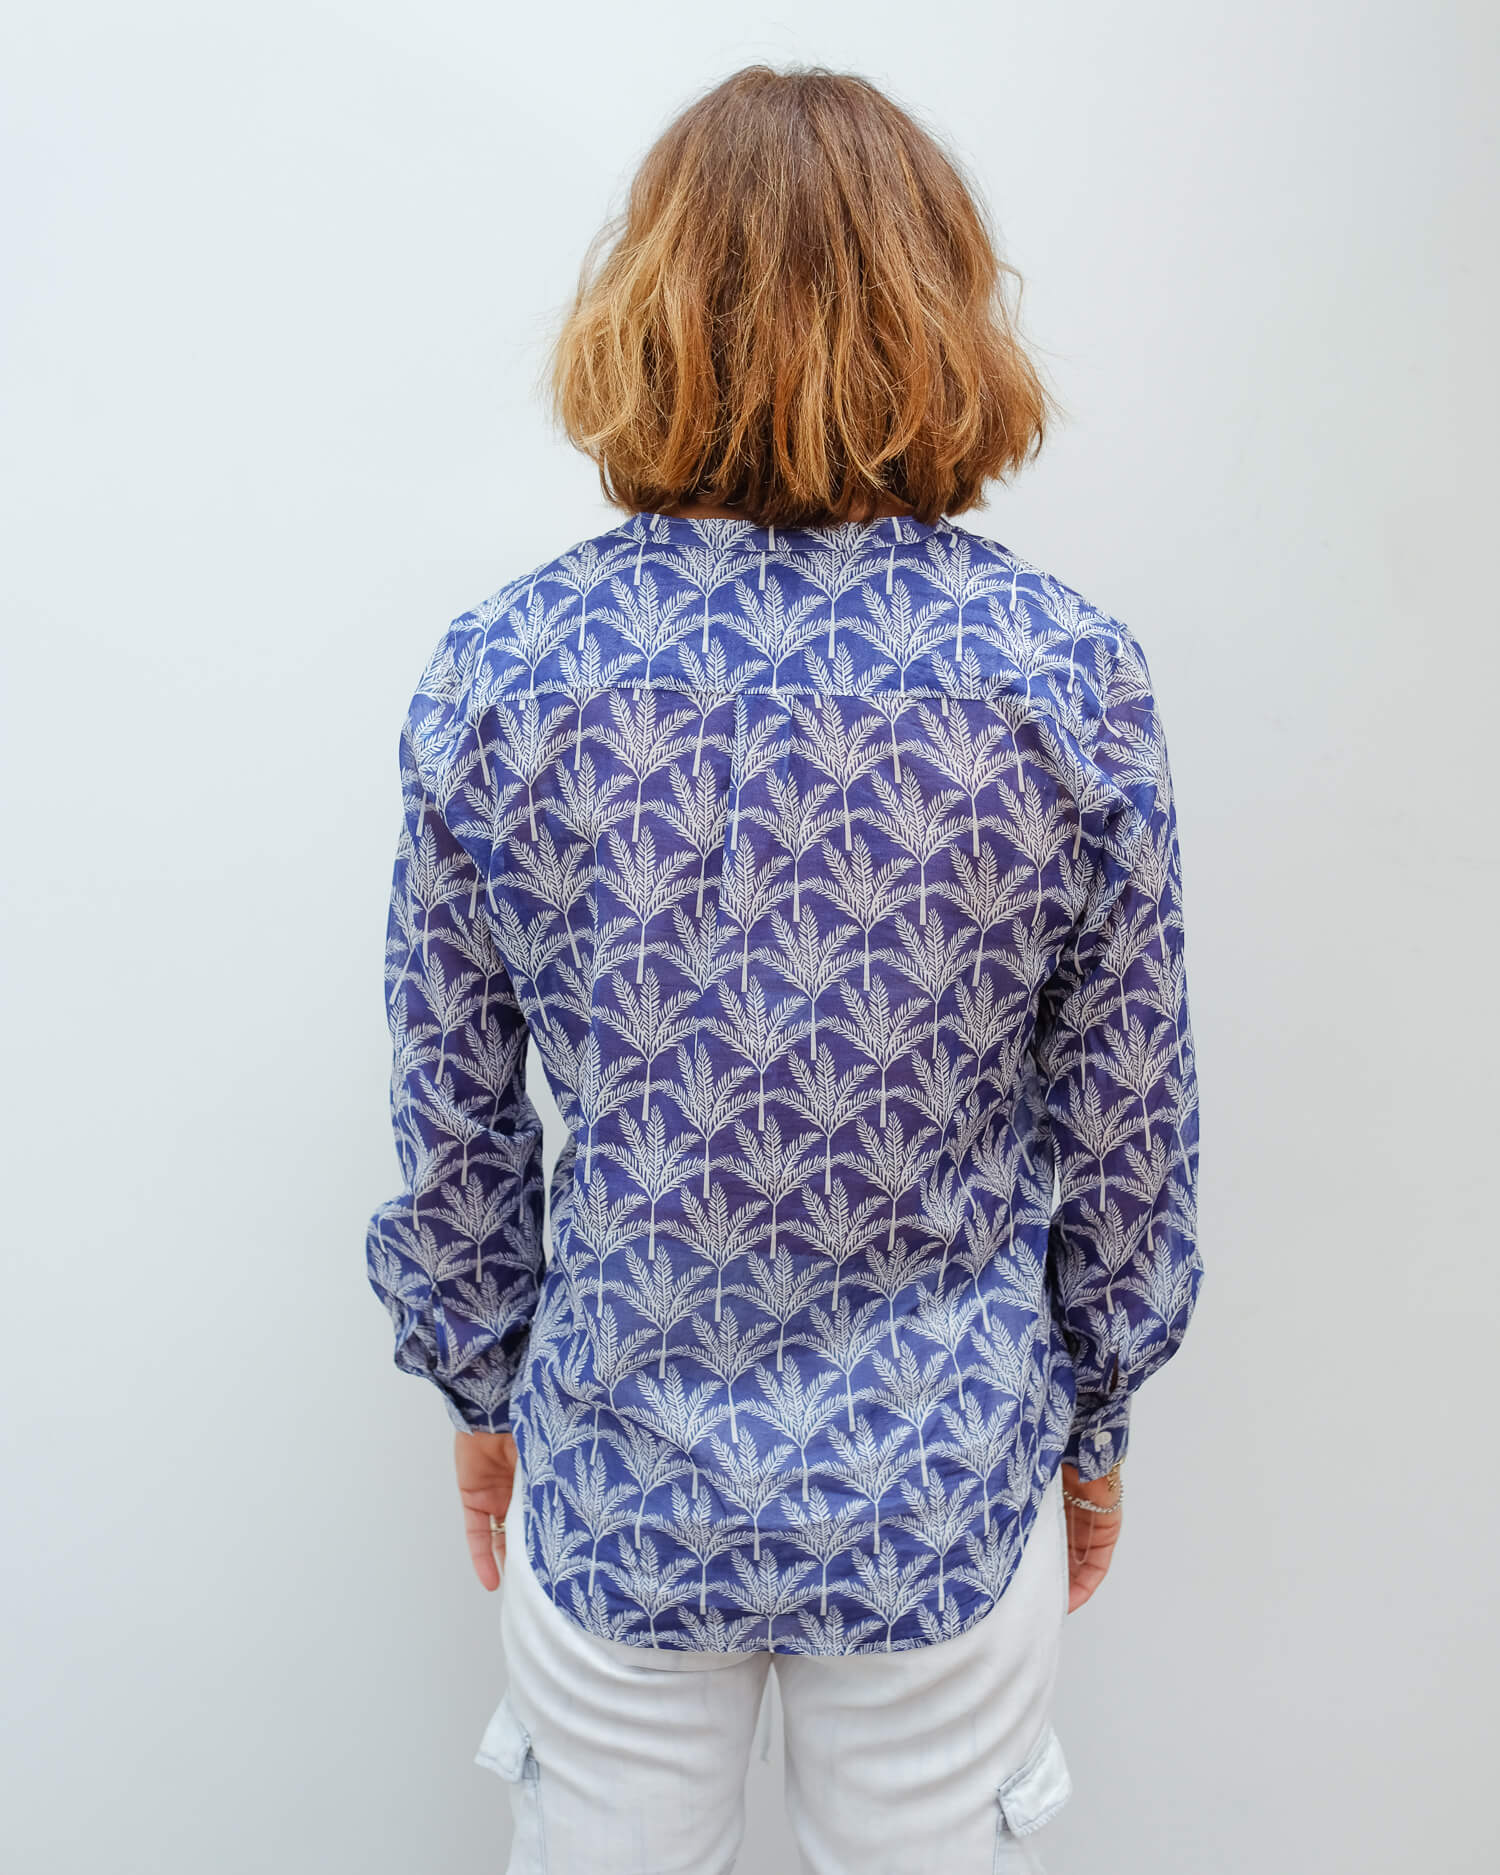 H Carta shirt in blue traveller tree